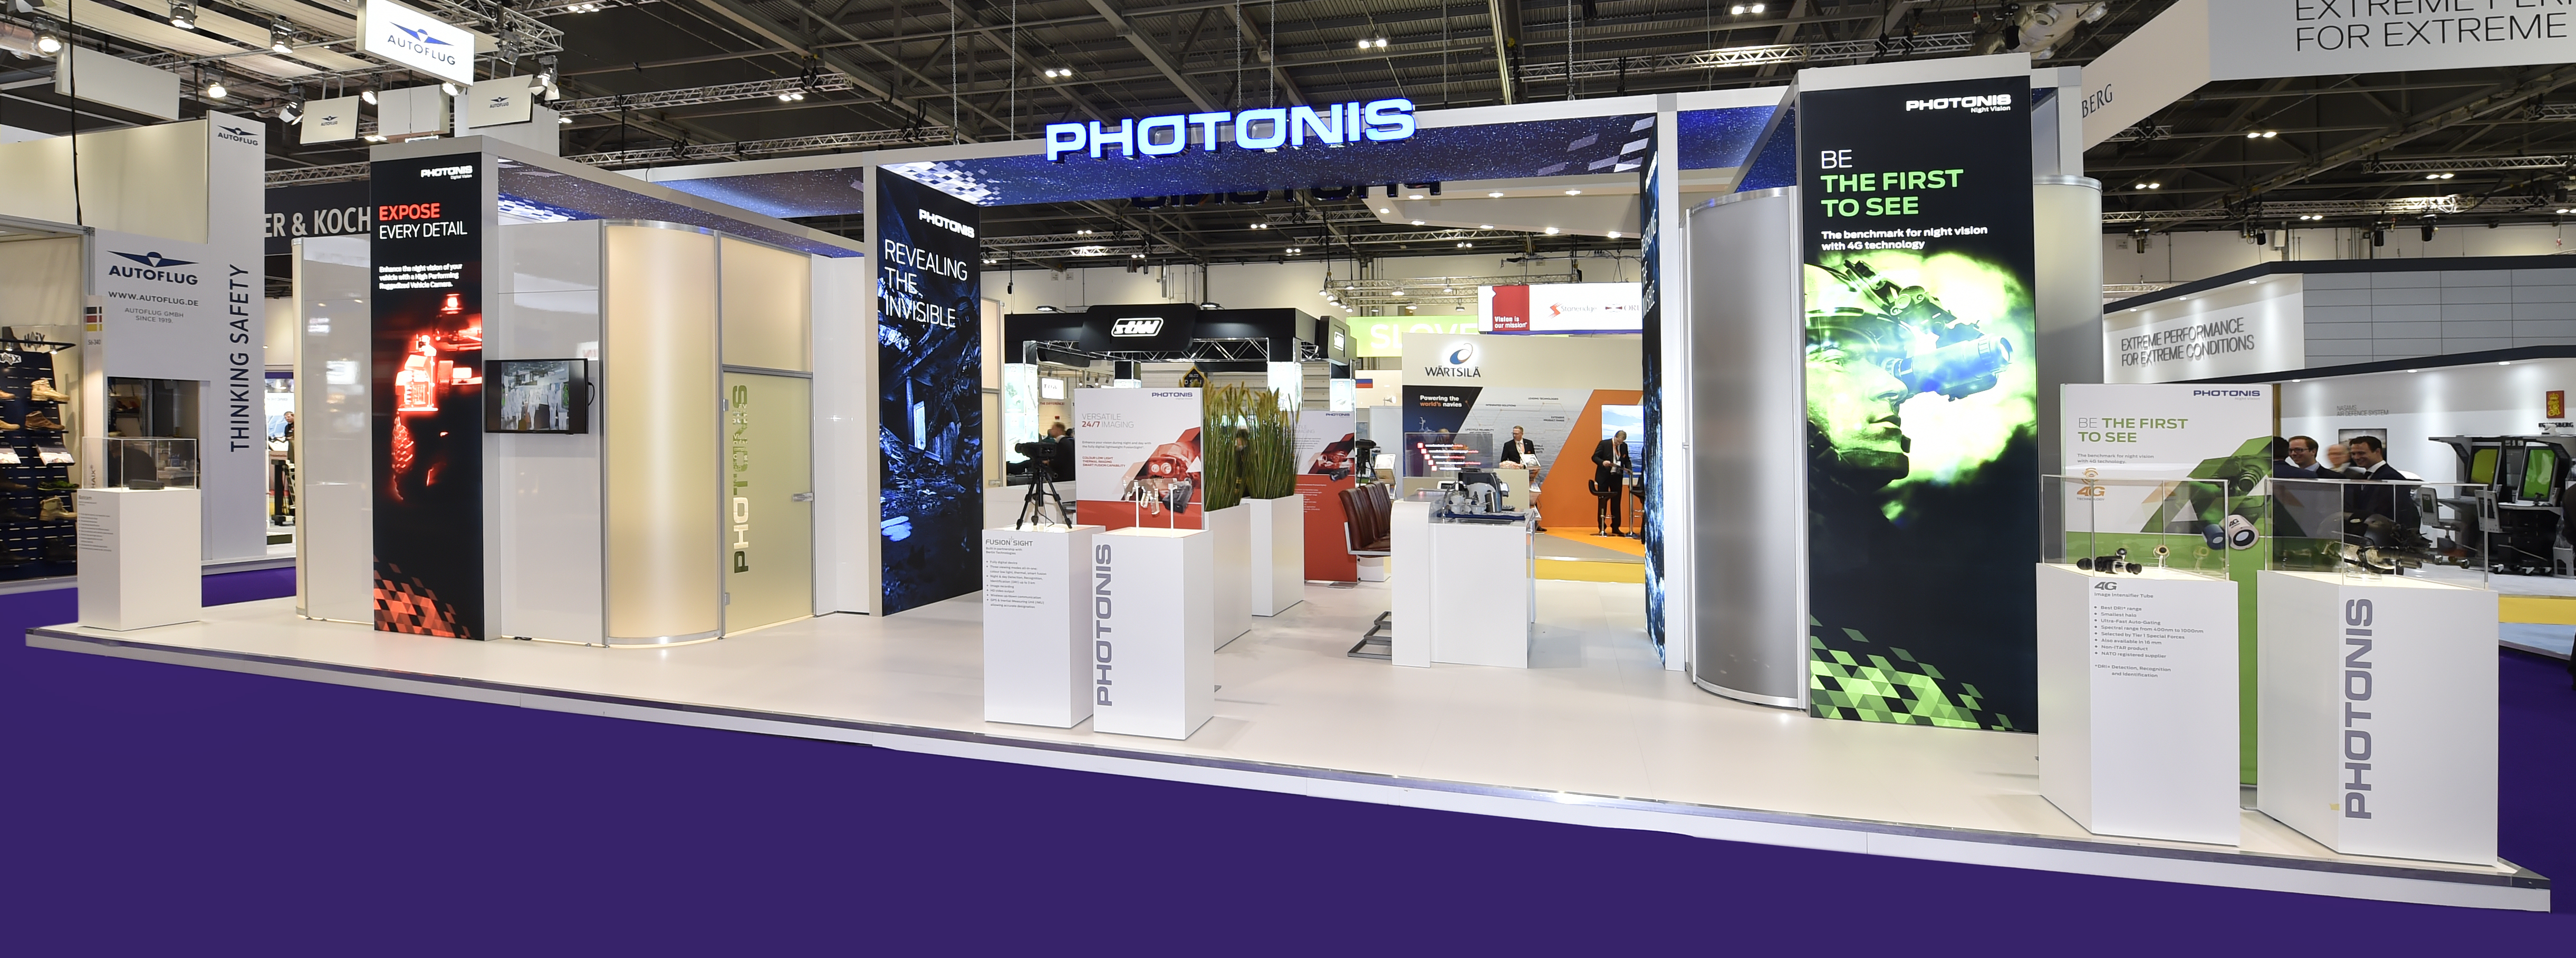 Photonis_Exhibition_Expovorm